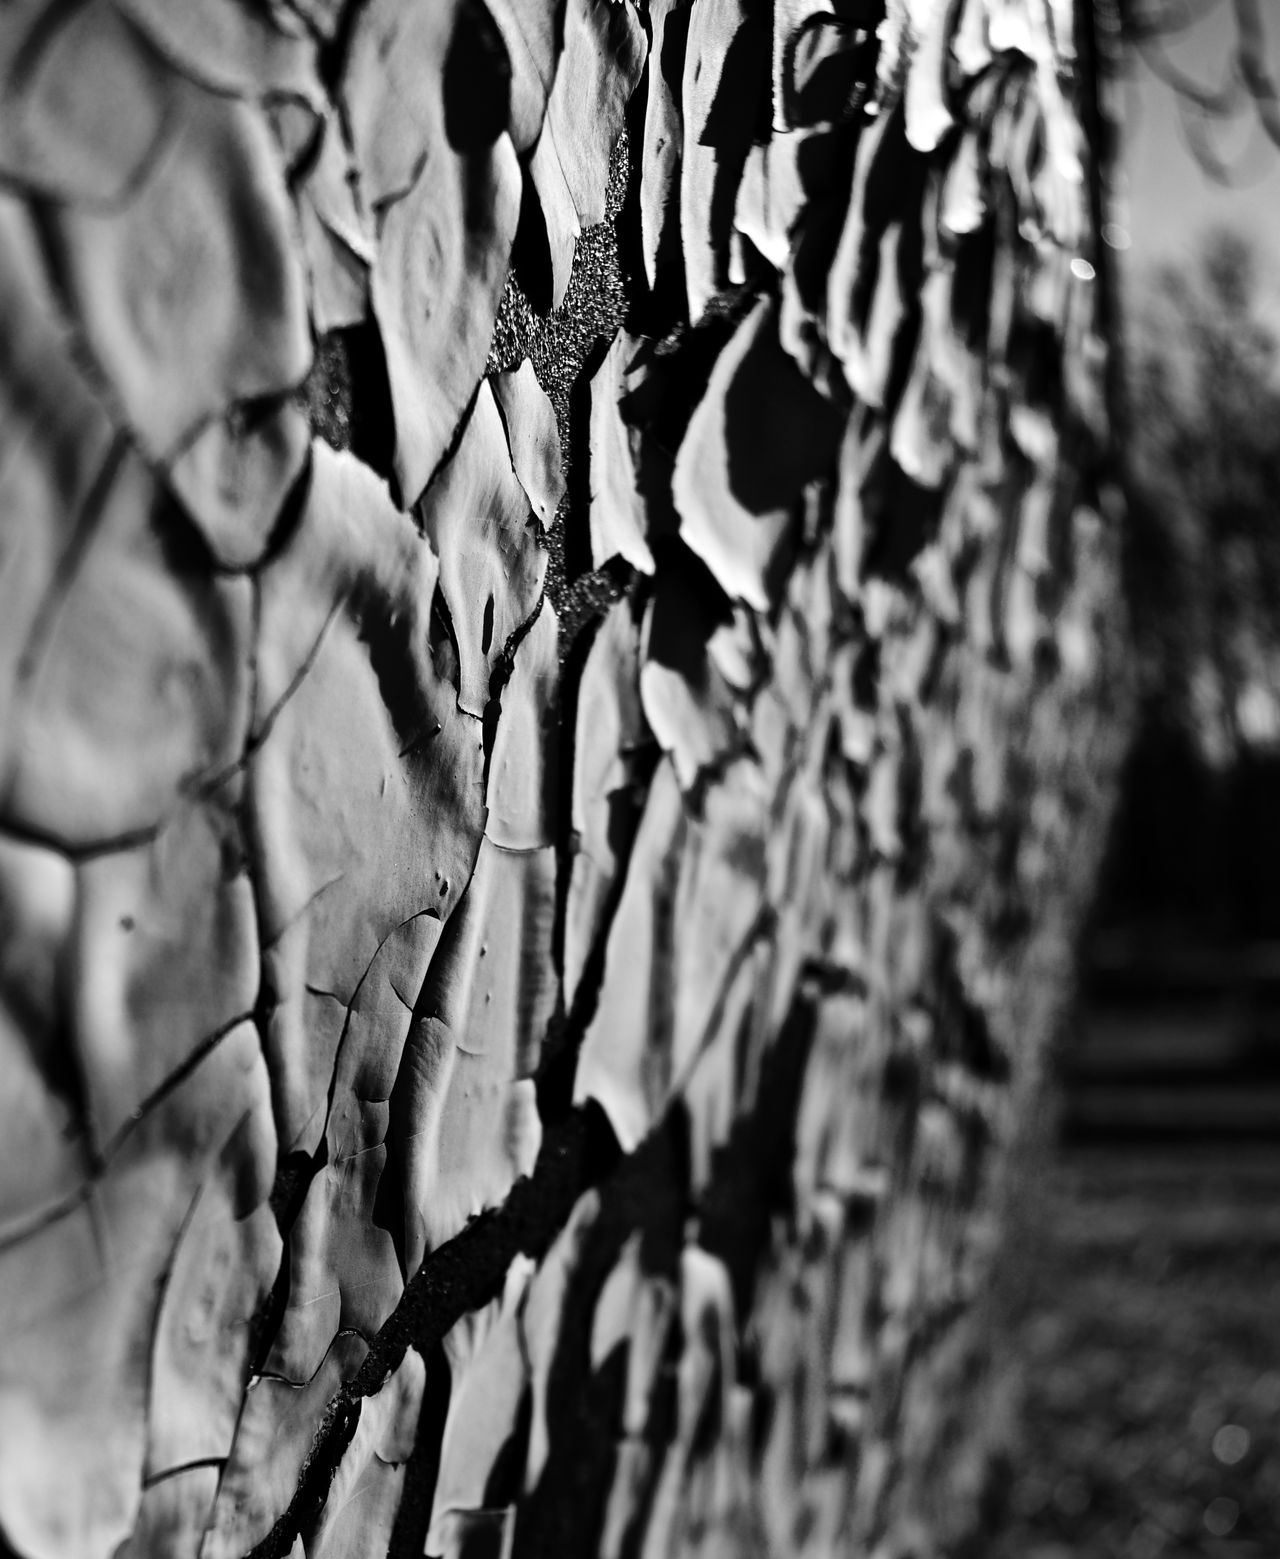 Selective Focus No People Day Close-up Outdoors Peeling Paint Old Vintage Train Bnw_collection Black & White Black And White Blackandwhite Scenics Nj